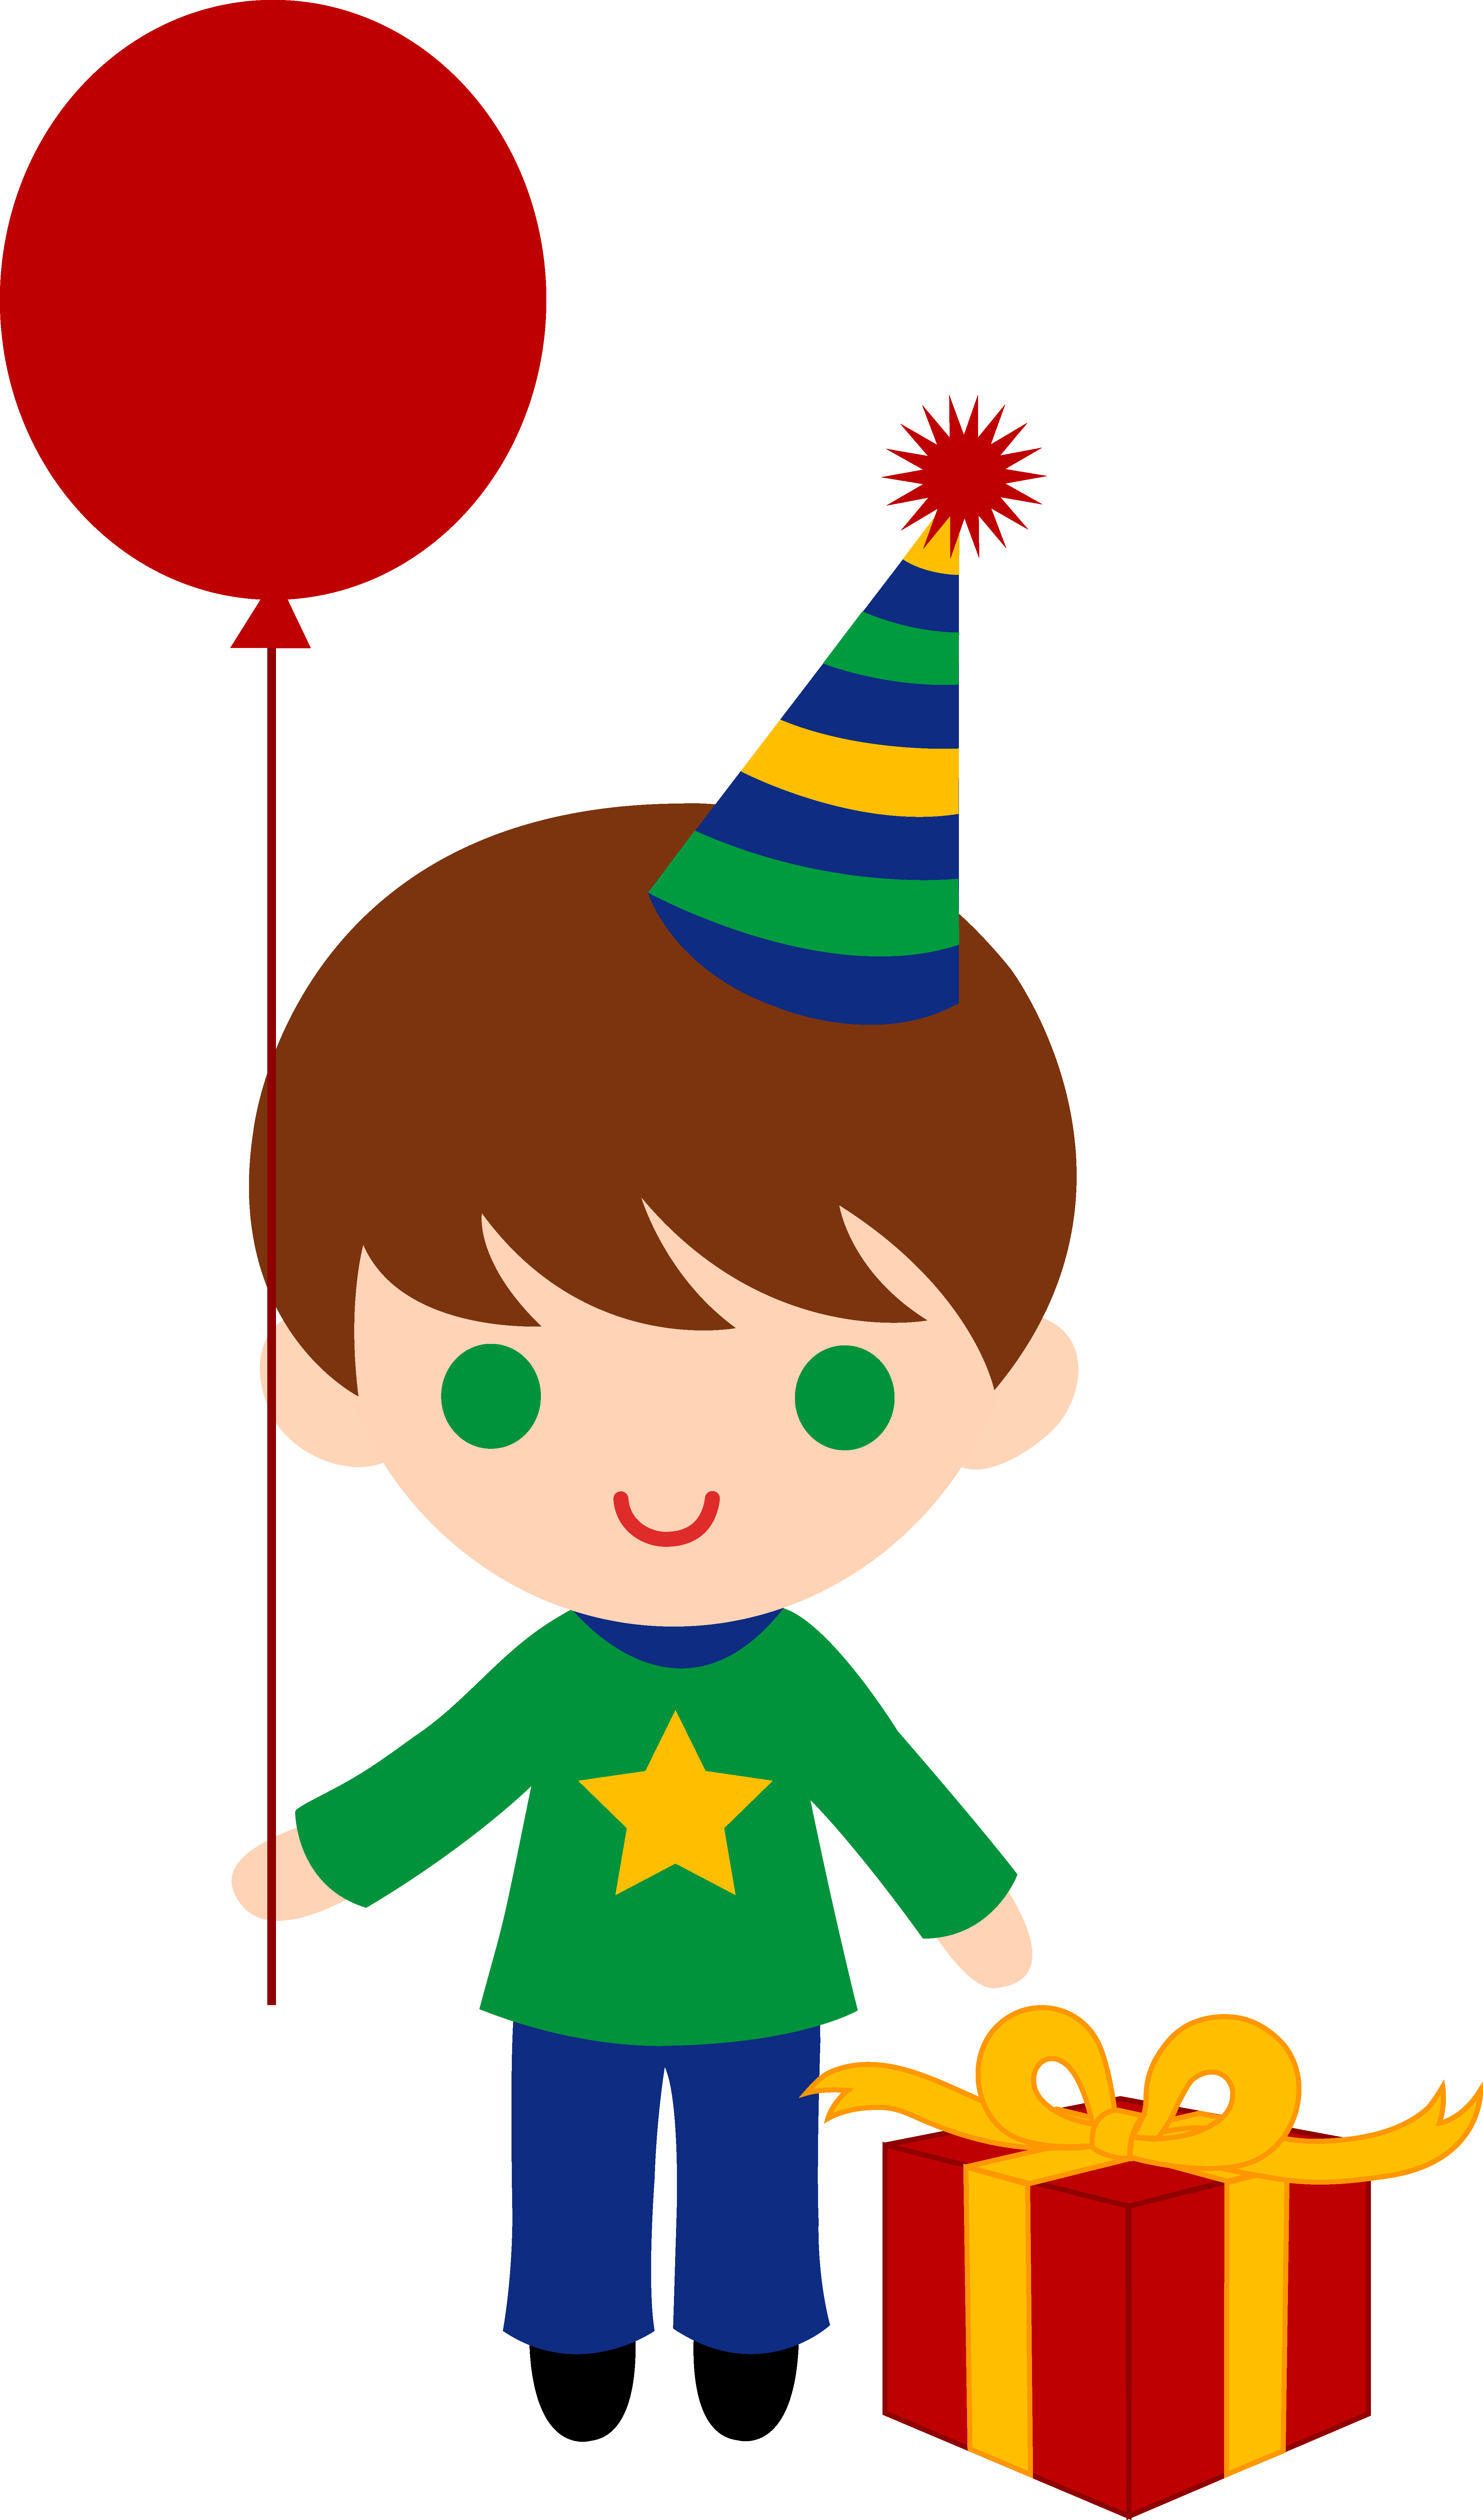 Little Birthday Boy Clip Art - Free Clip Art